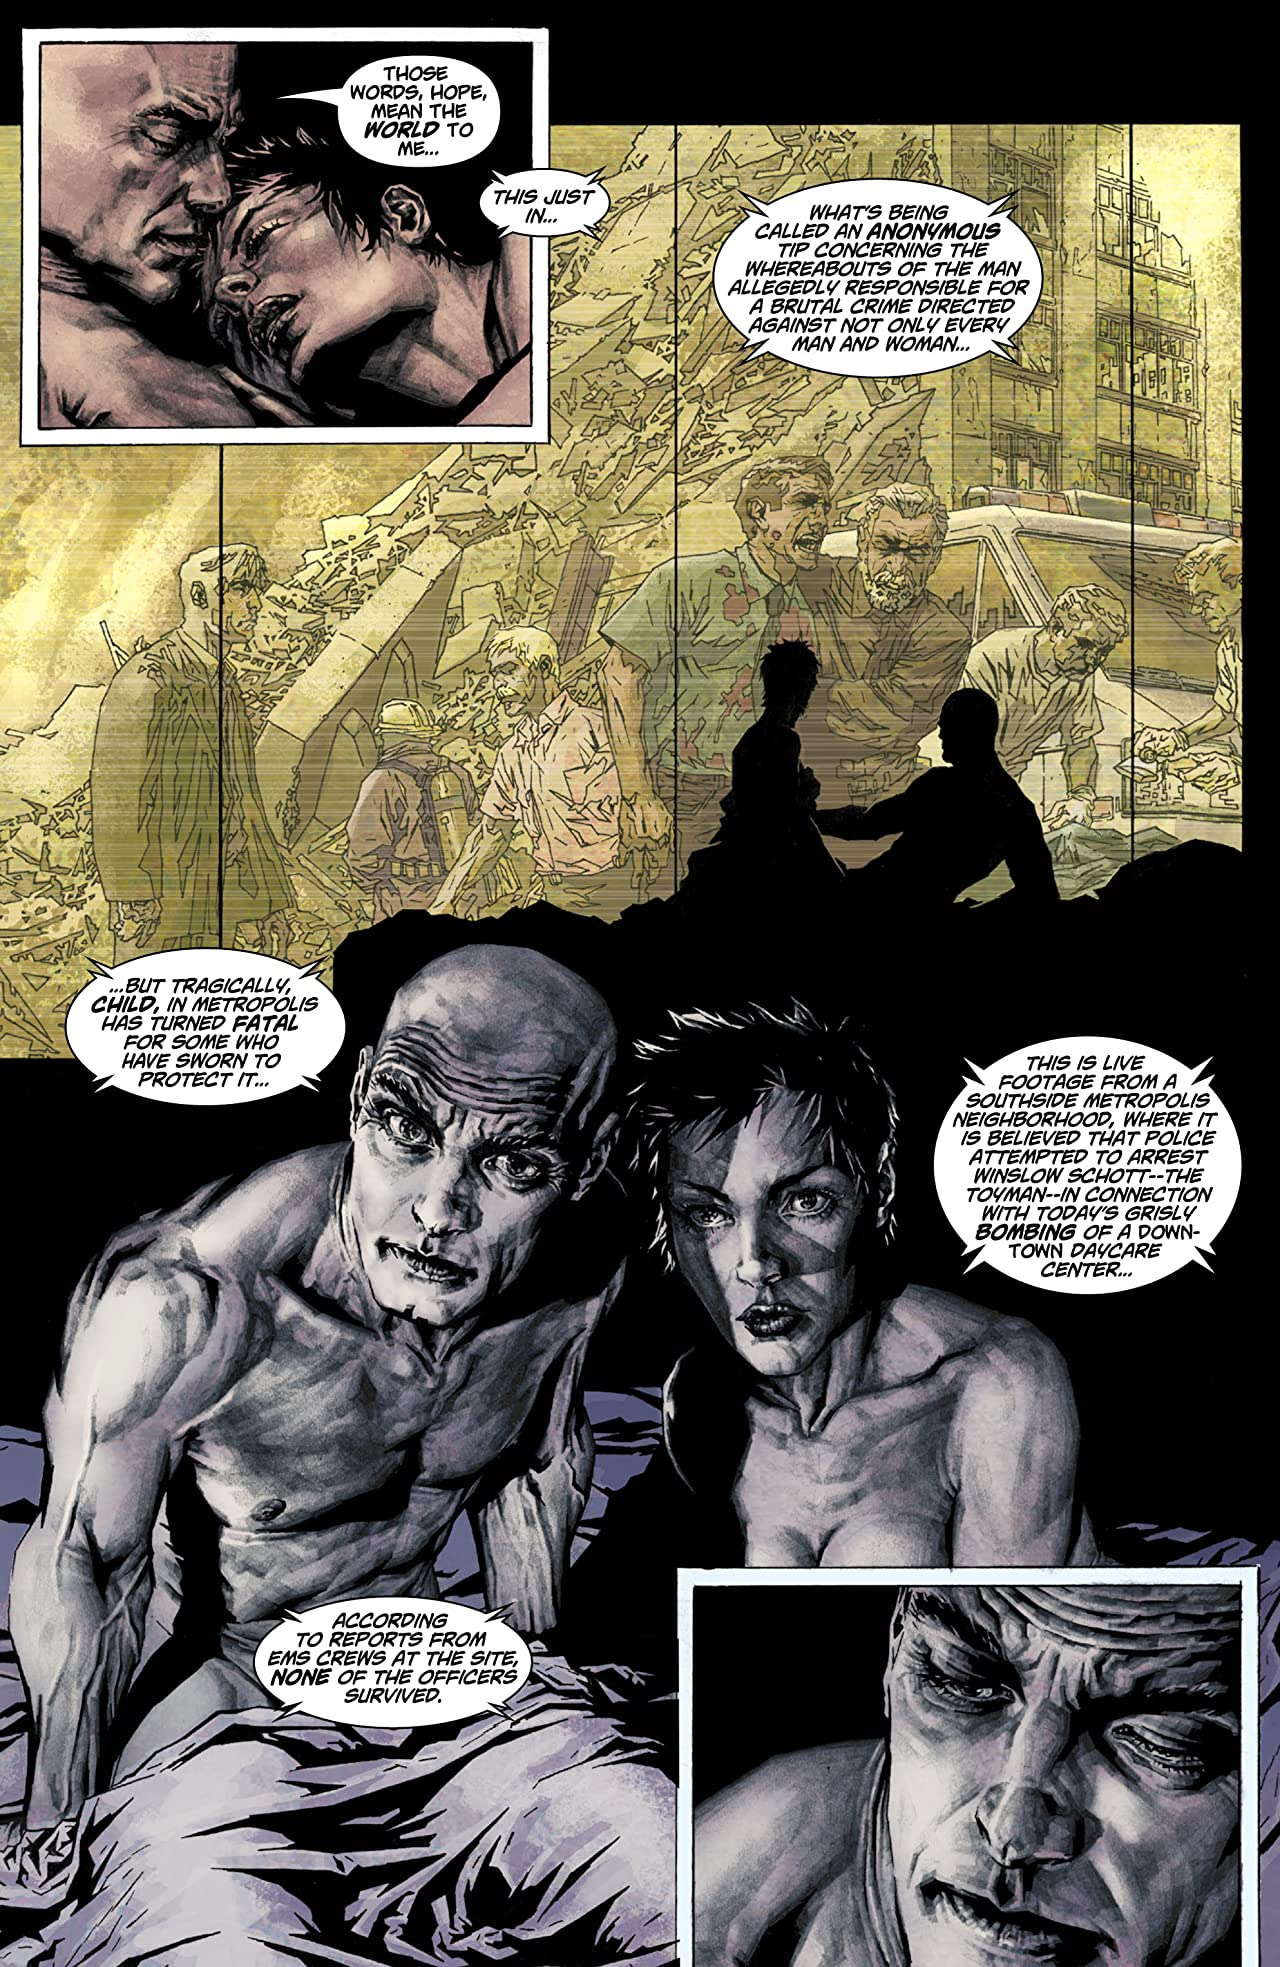 Lex Luthor: Man of Steel #5 (of 5)